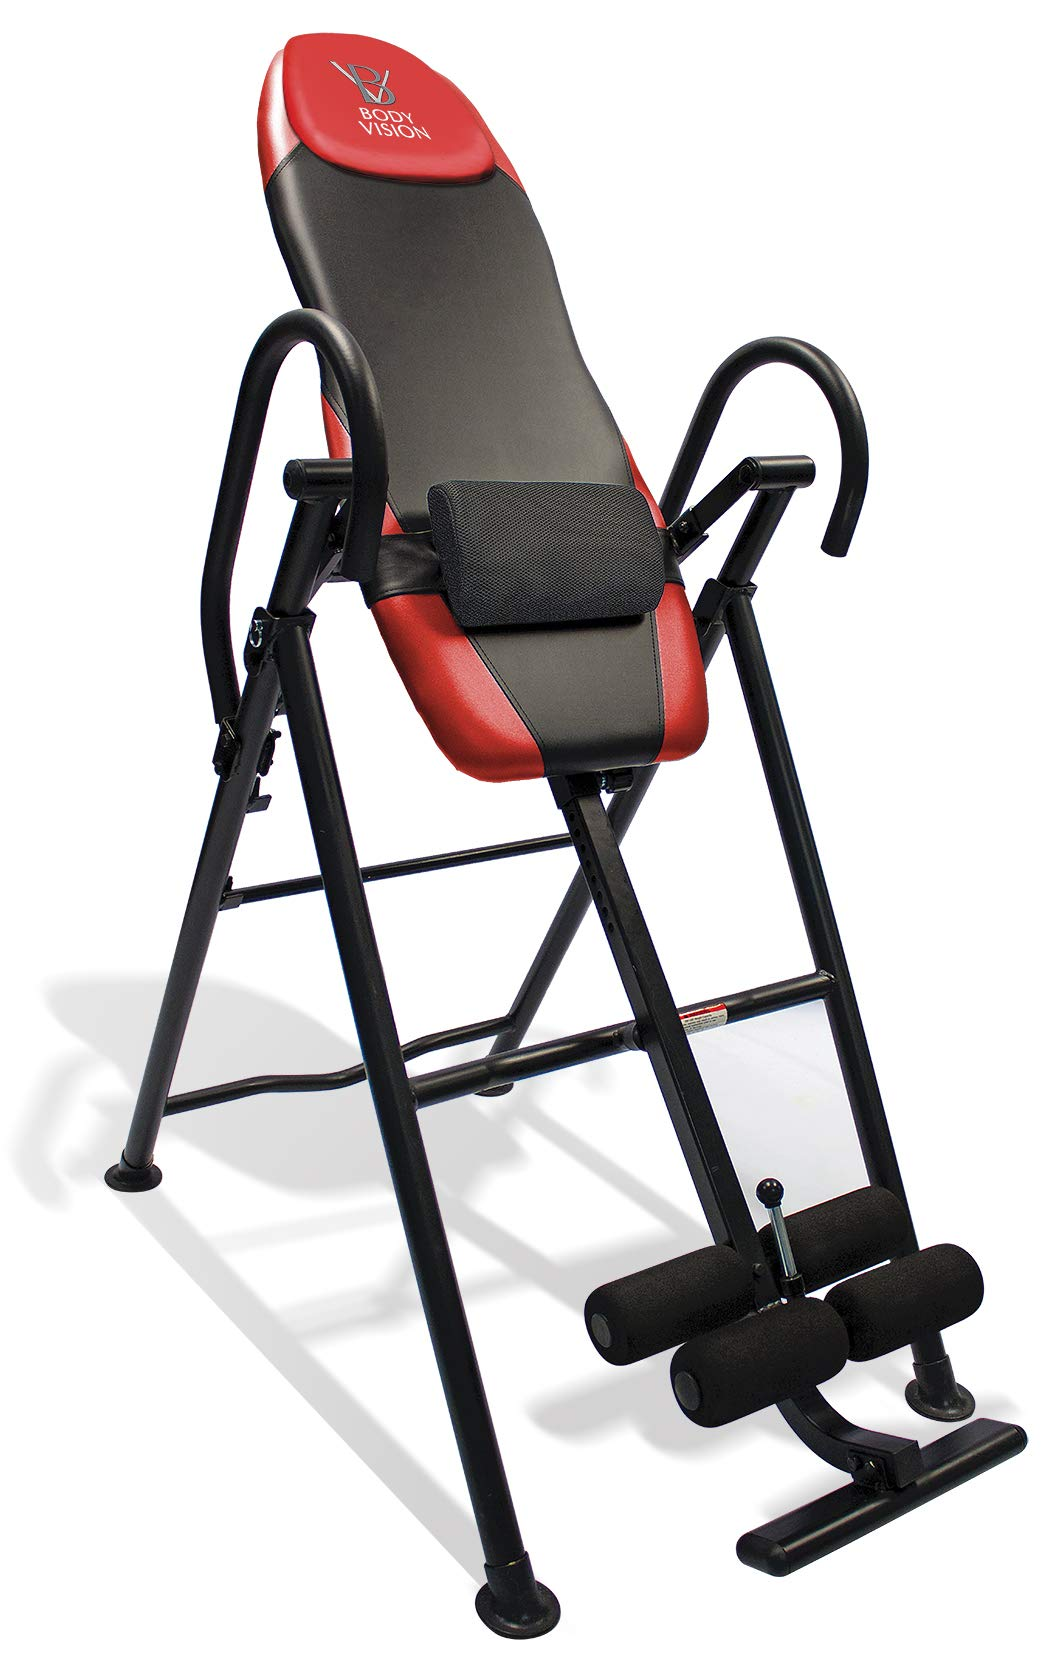 Body Vision Inversion Adjustable Support